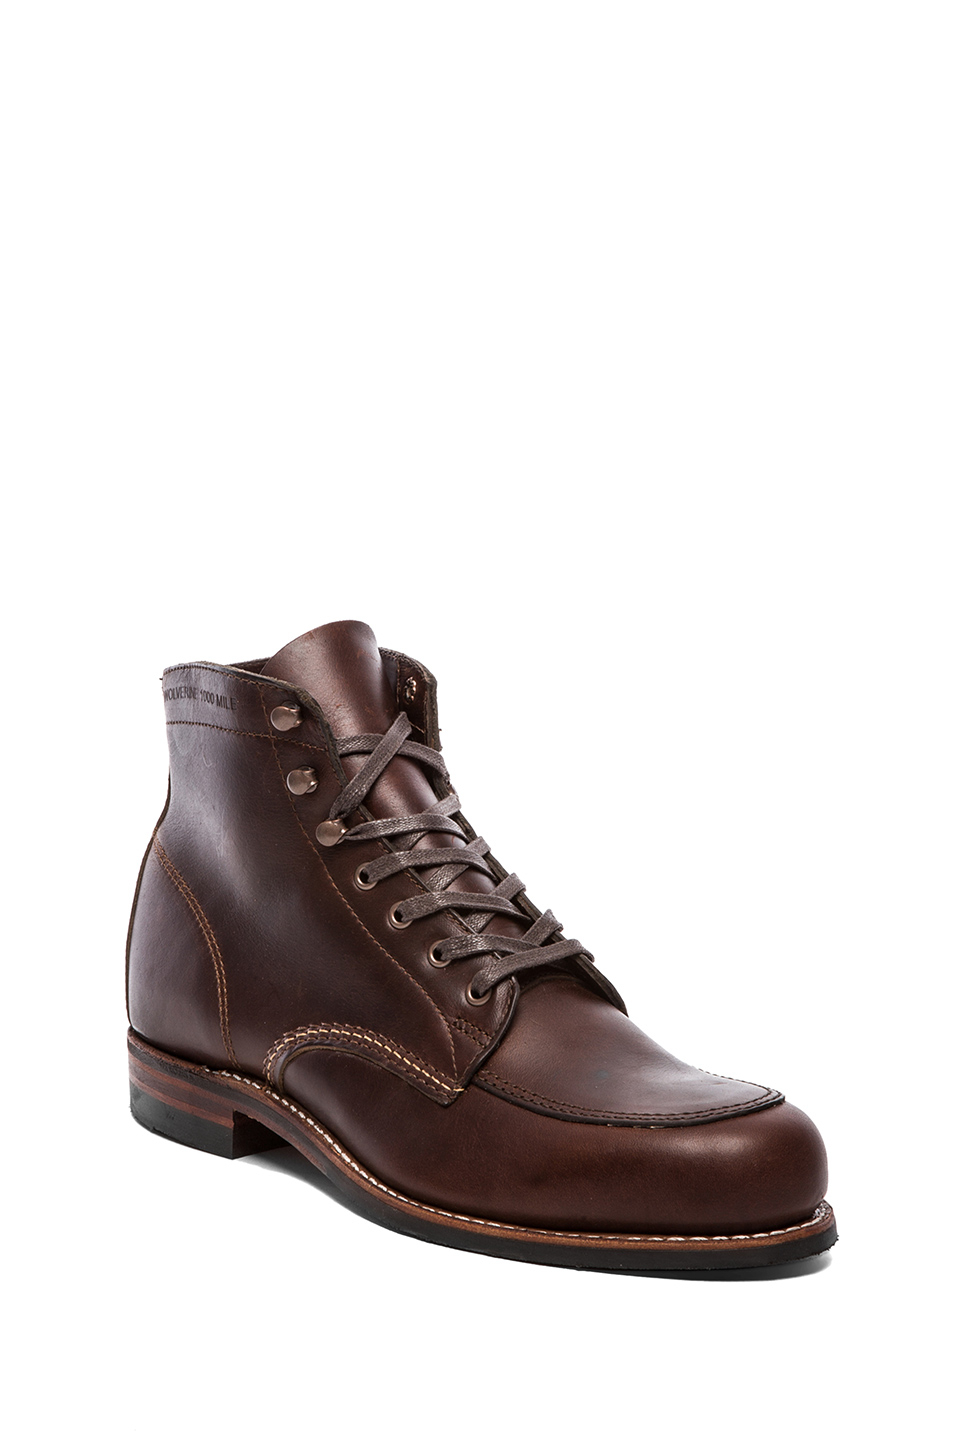 Wolverine boots coupon code